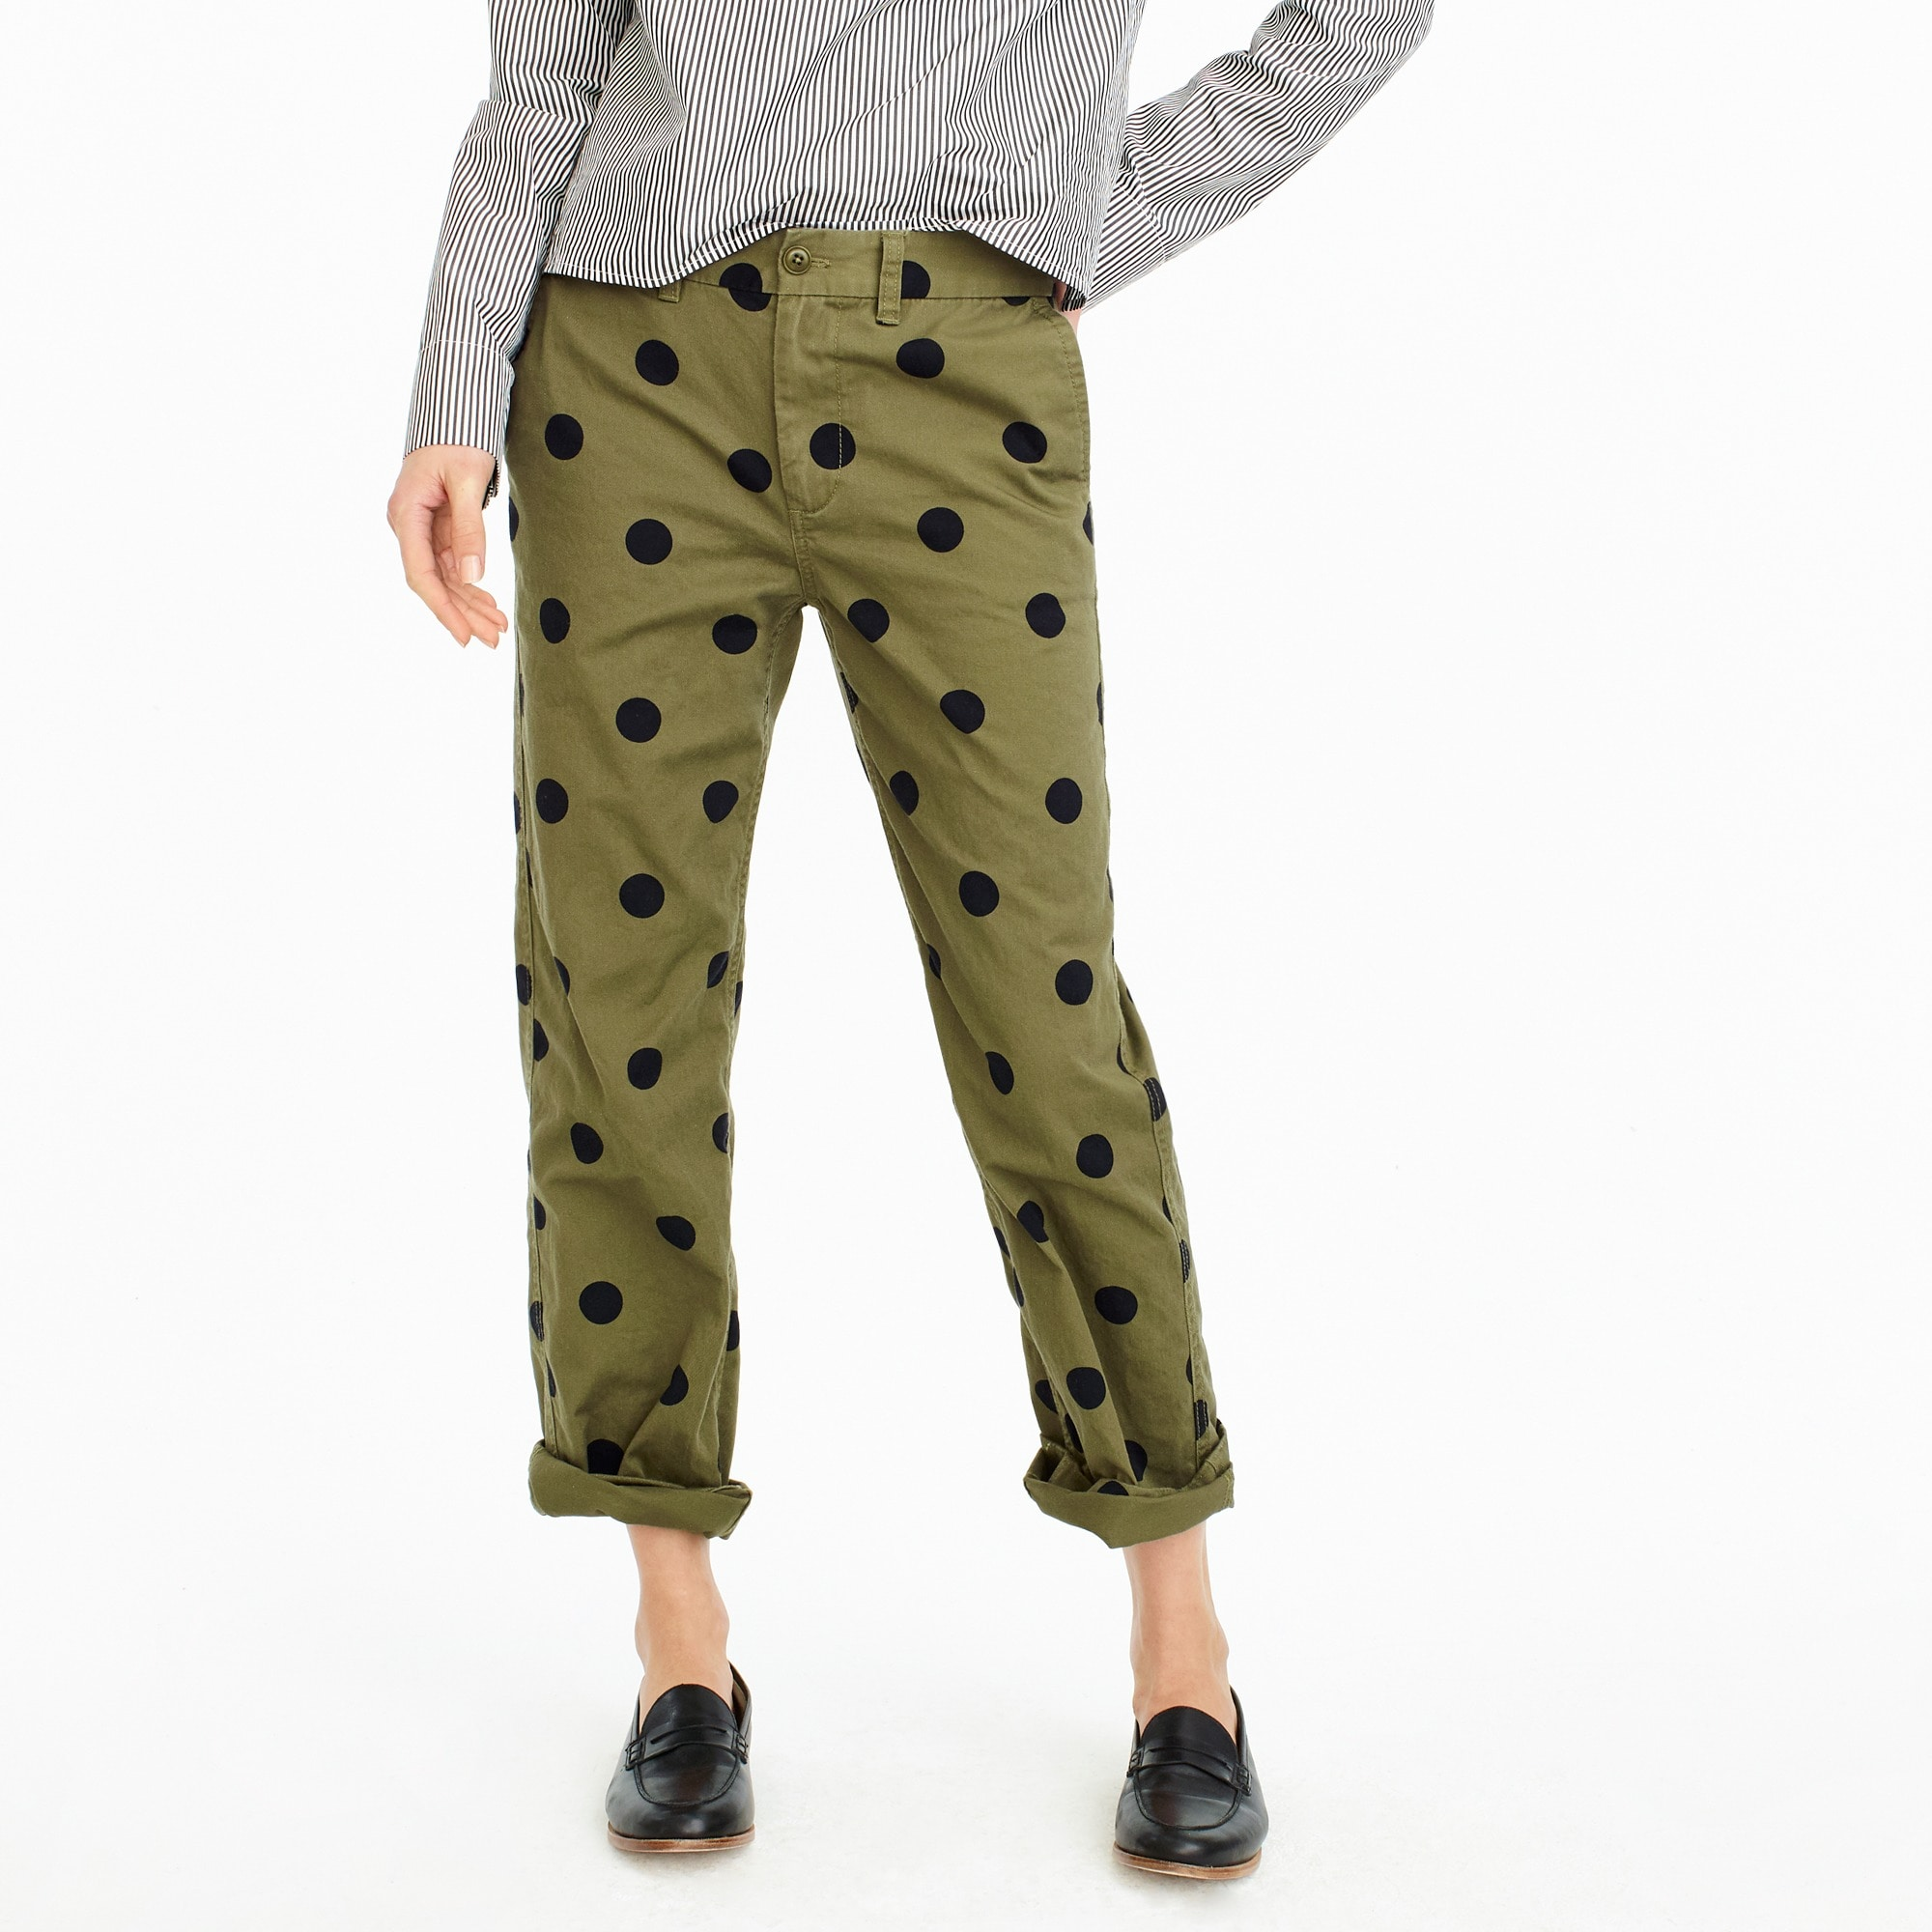 Tall boyfriend chino pant in polka dot